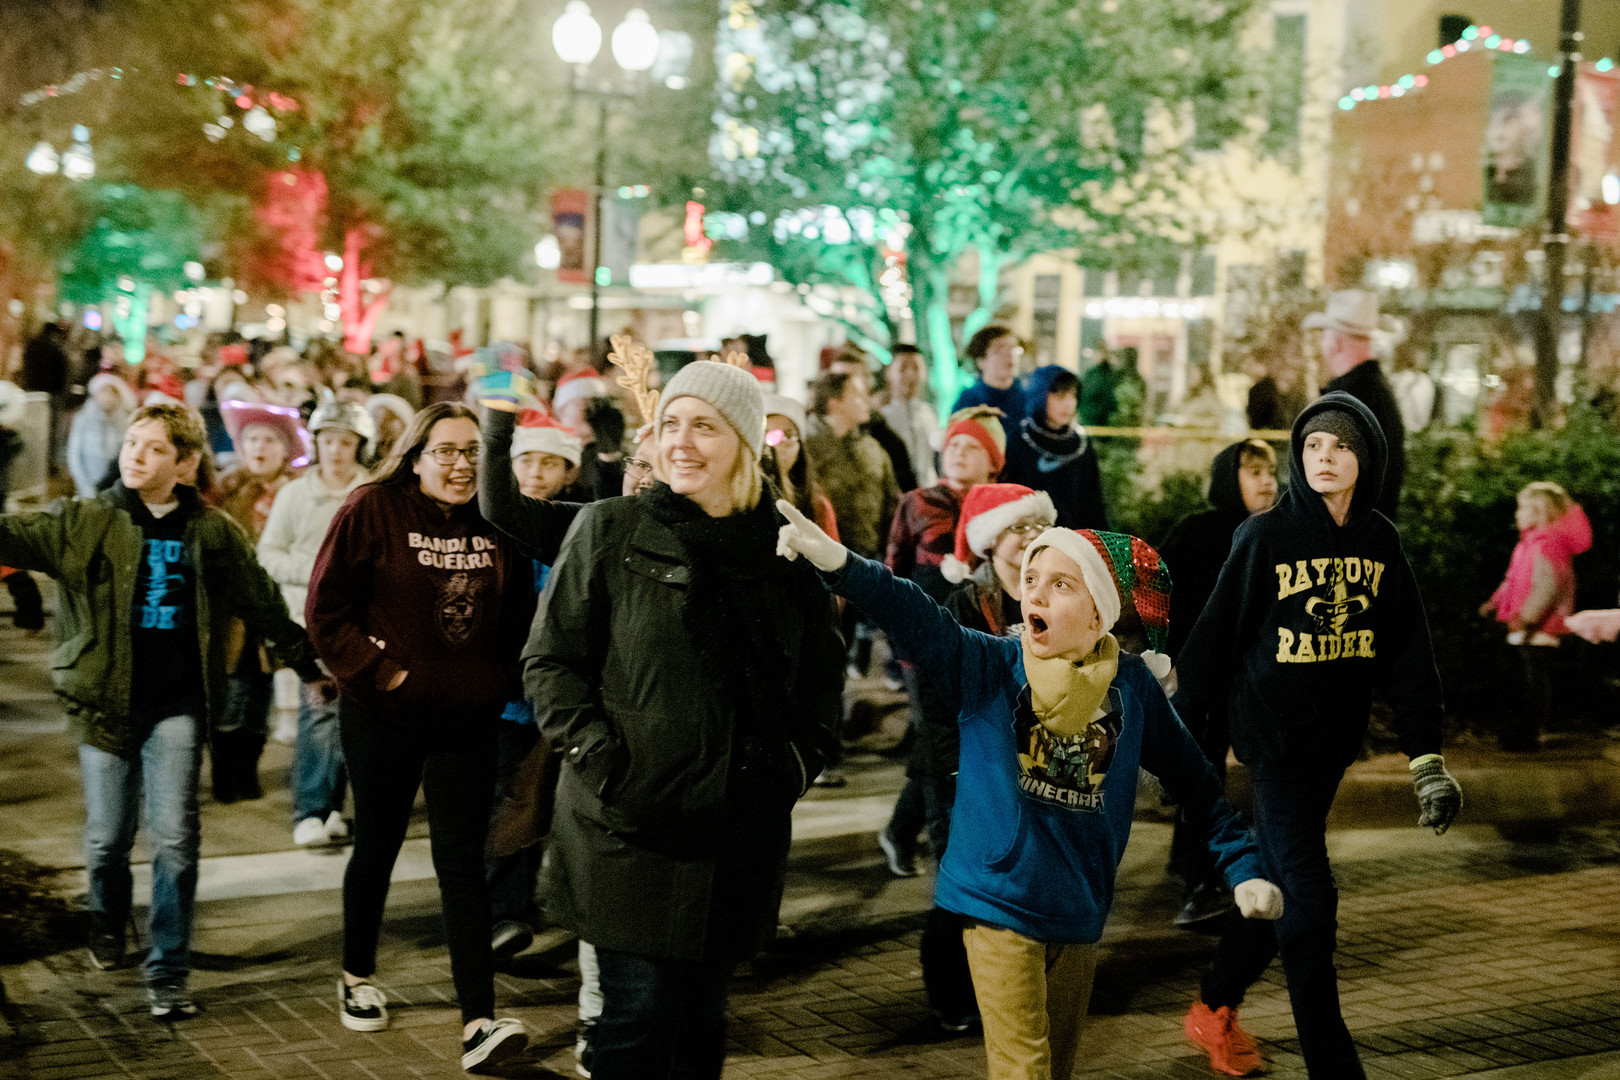 Downtown-Bryan-Christmas-Parade-2018-37.